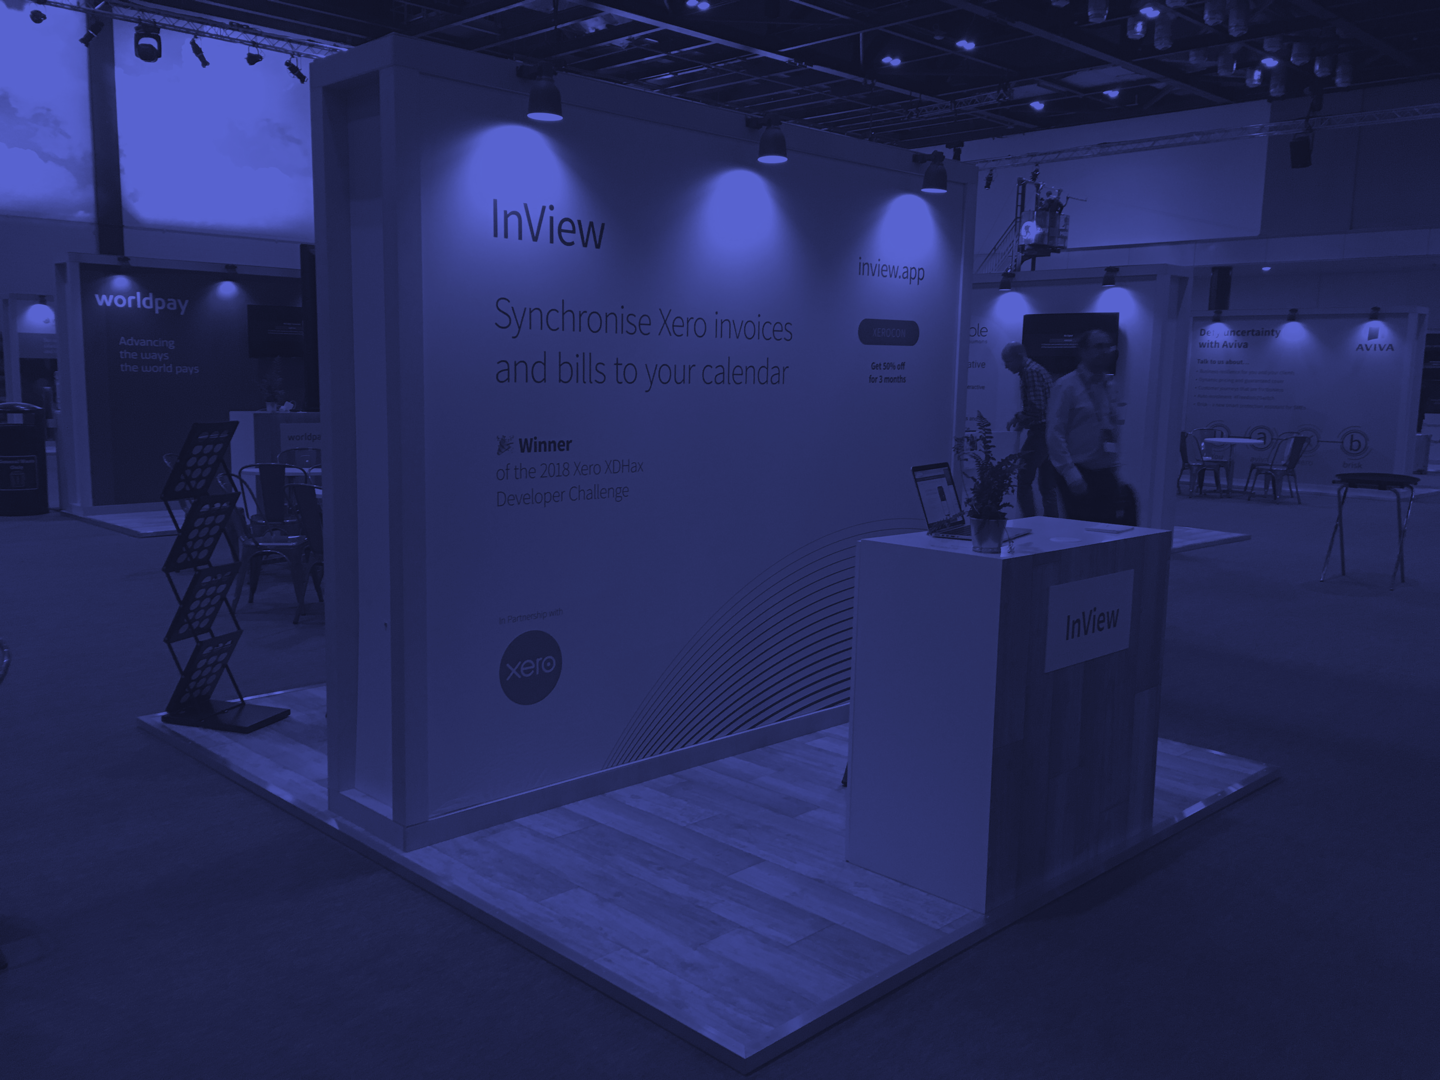 InView at Xerocon, ExCel London